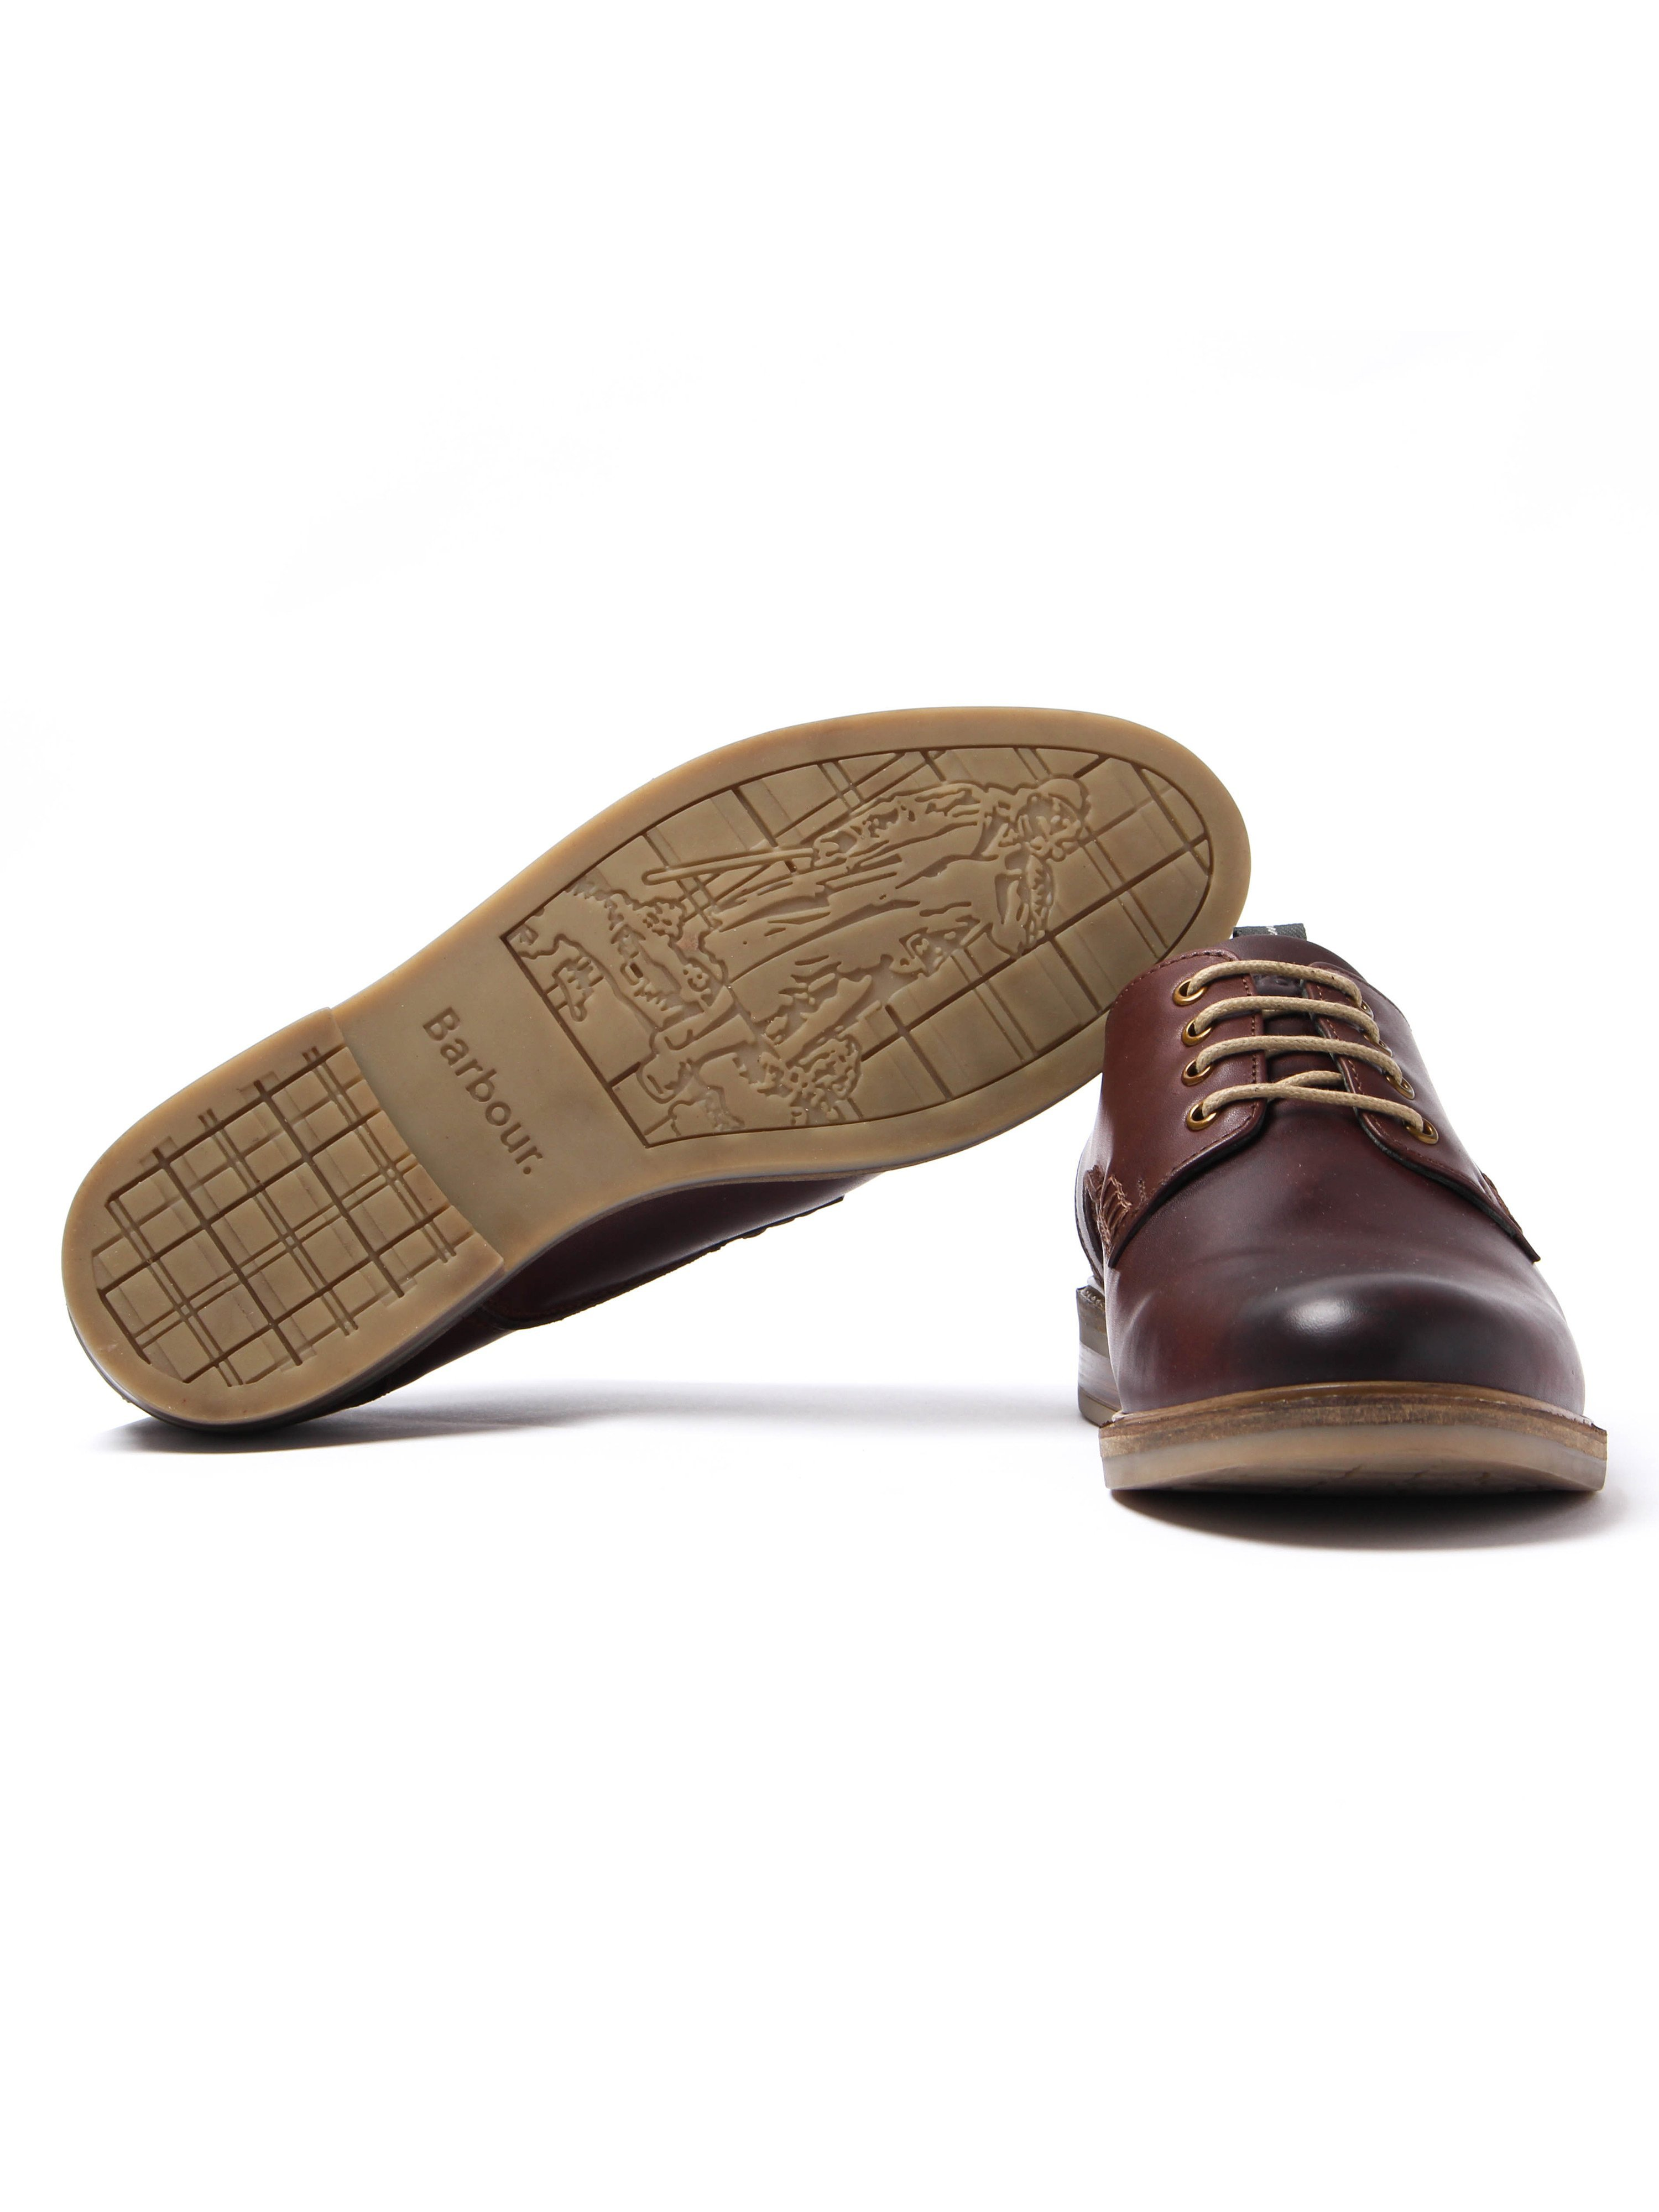 Barbour Men's Bramley Leather Derby Shoes - Brown